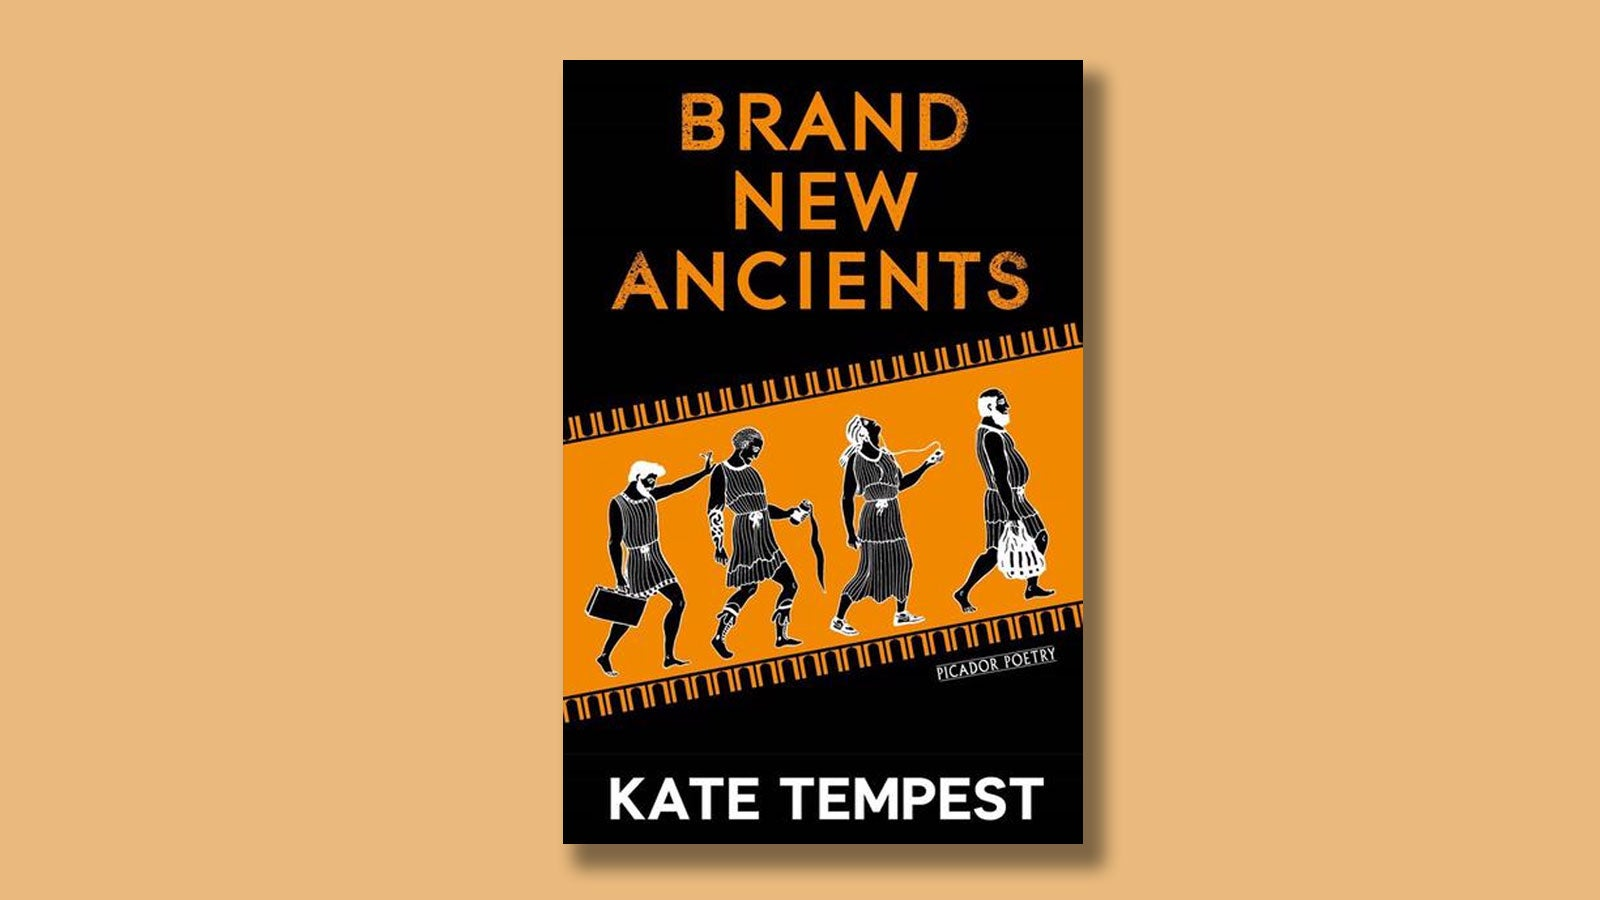 Brand New Ancients by Kae Tempest on a pale orange background.